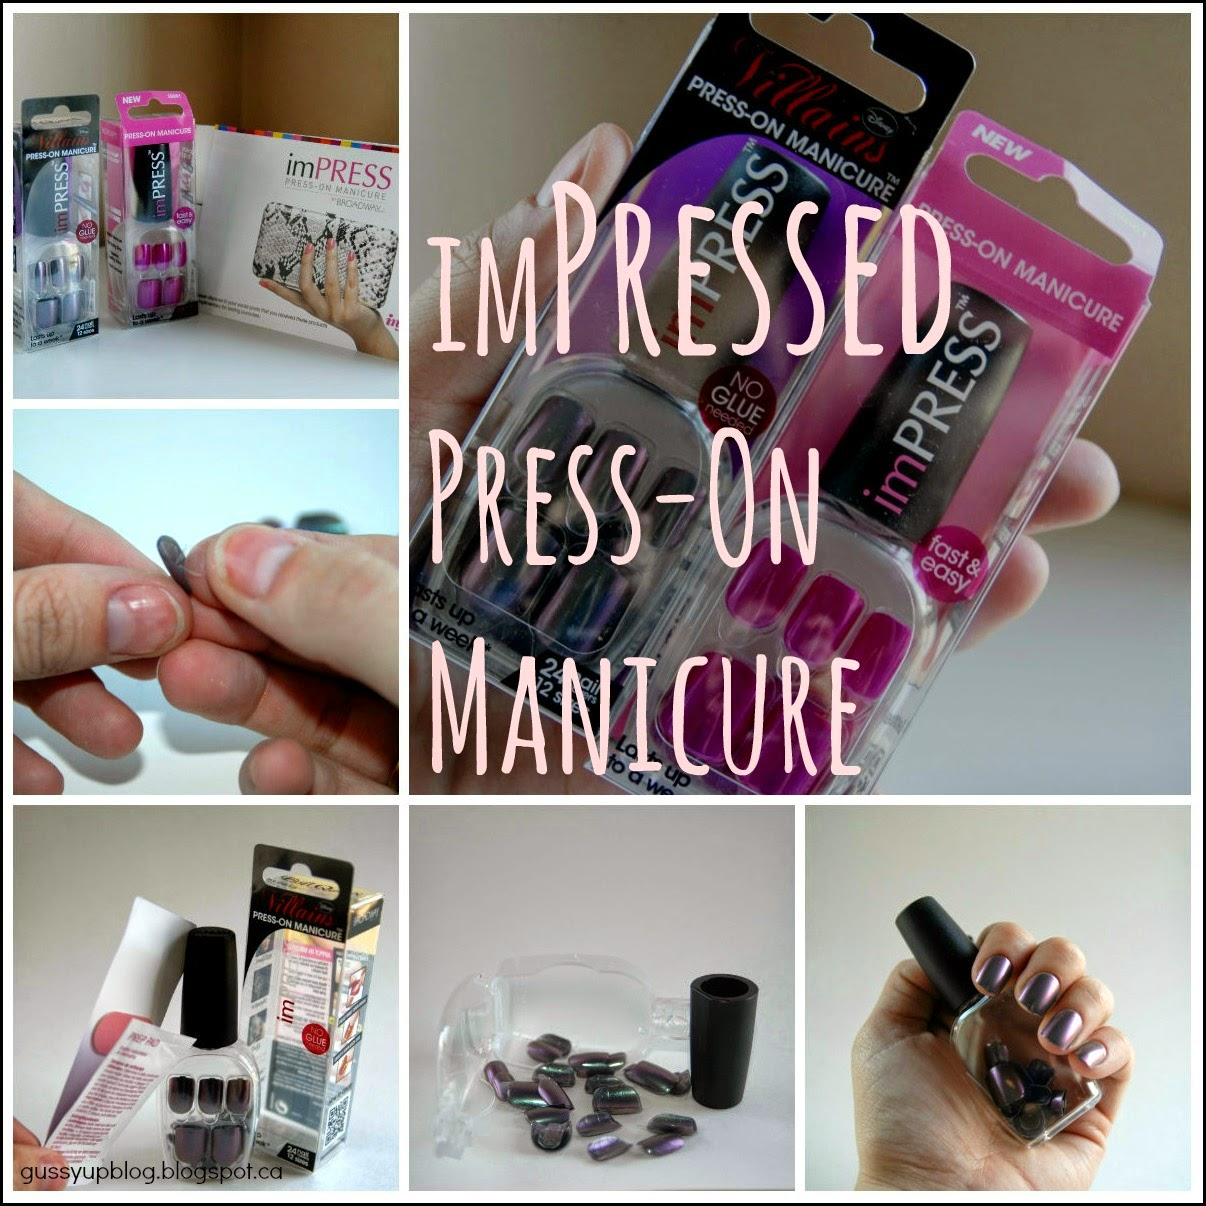 10 Tips For 10 Fantastic Fingertips, Featuring imPress Press-On Manicure